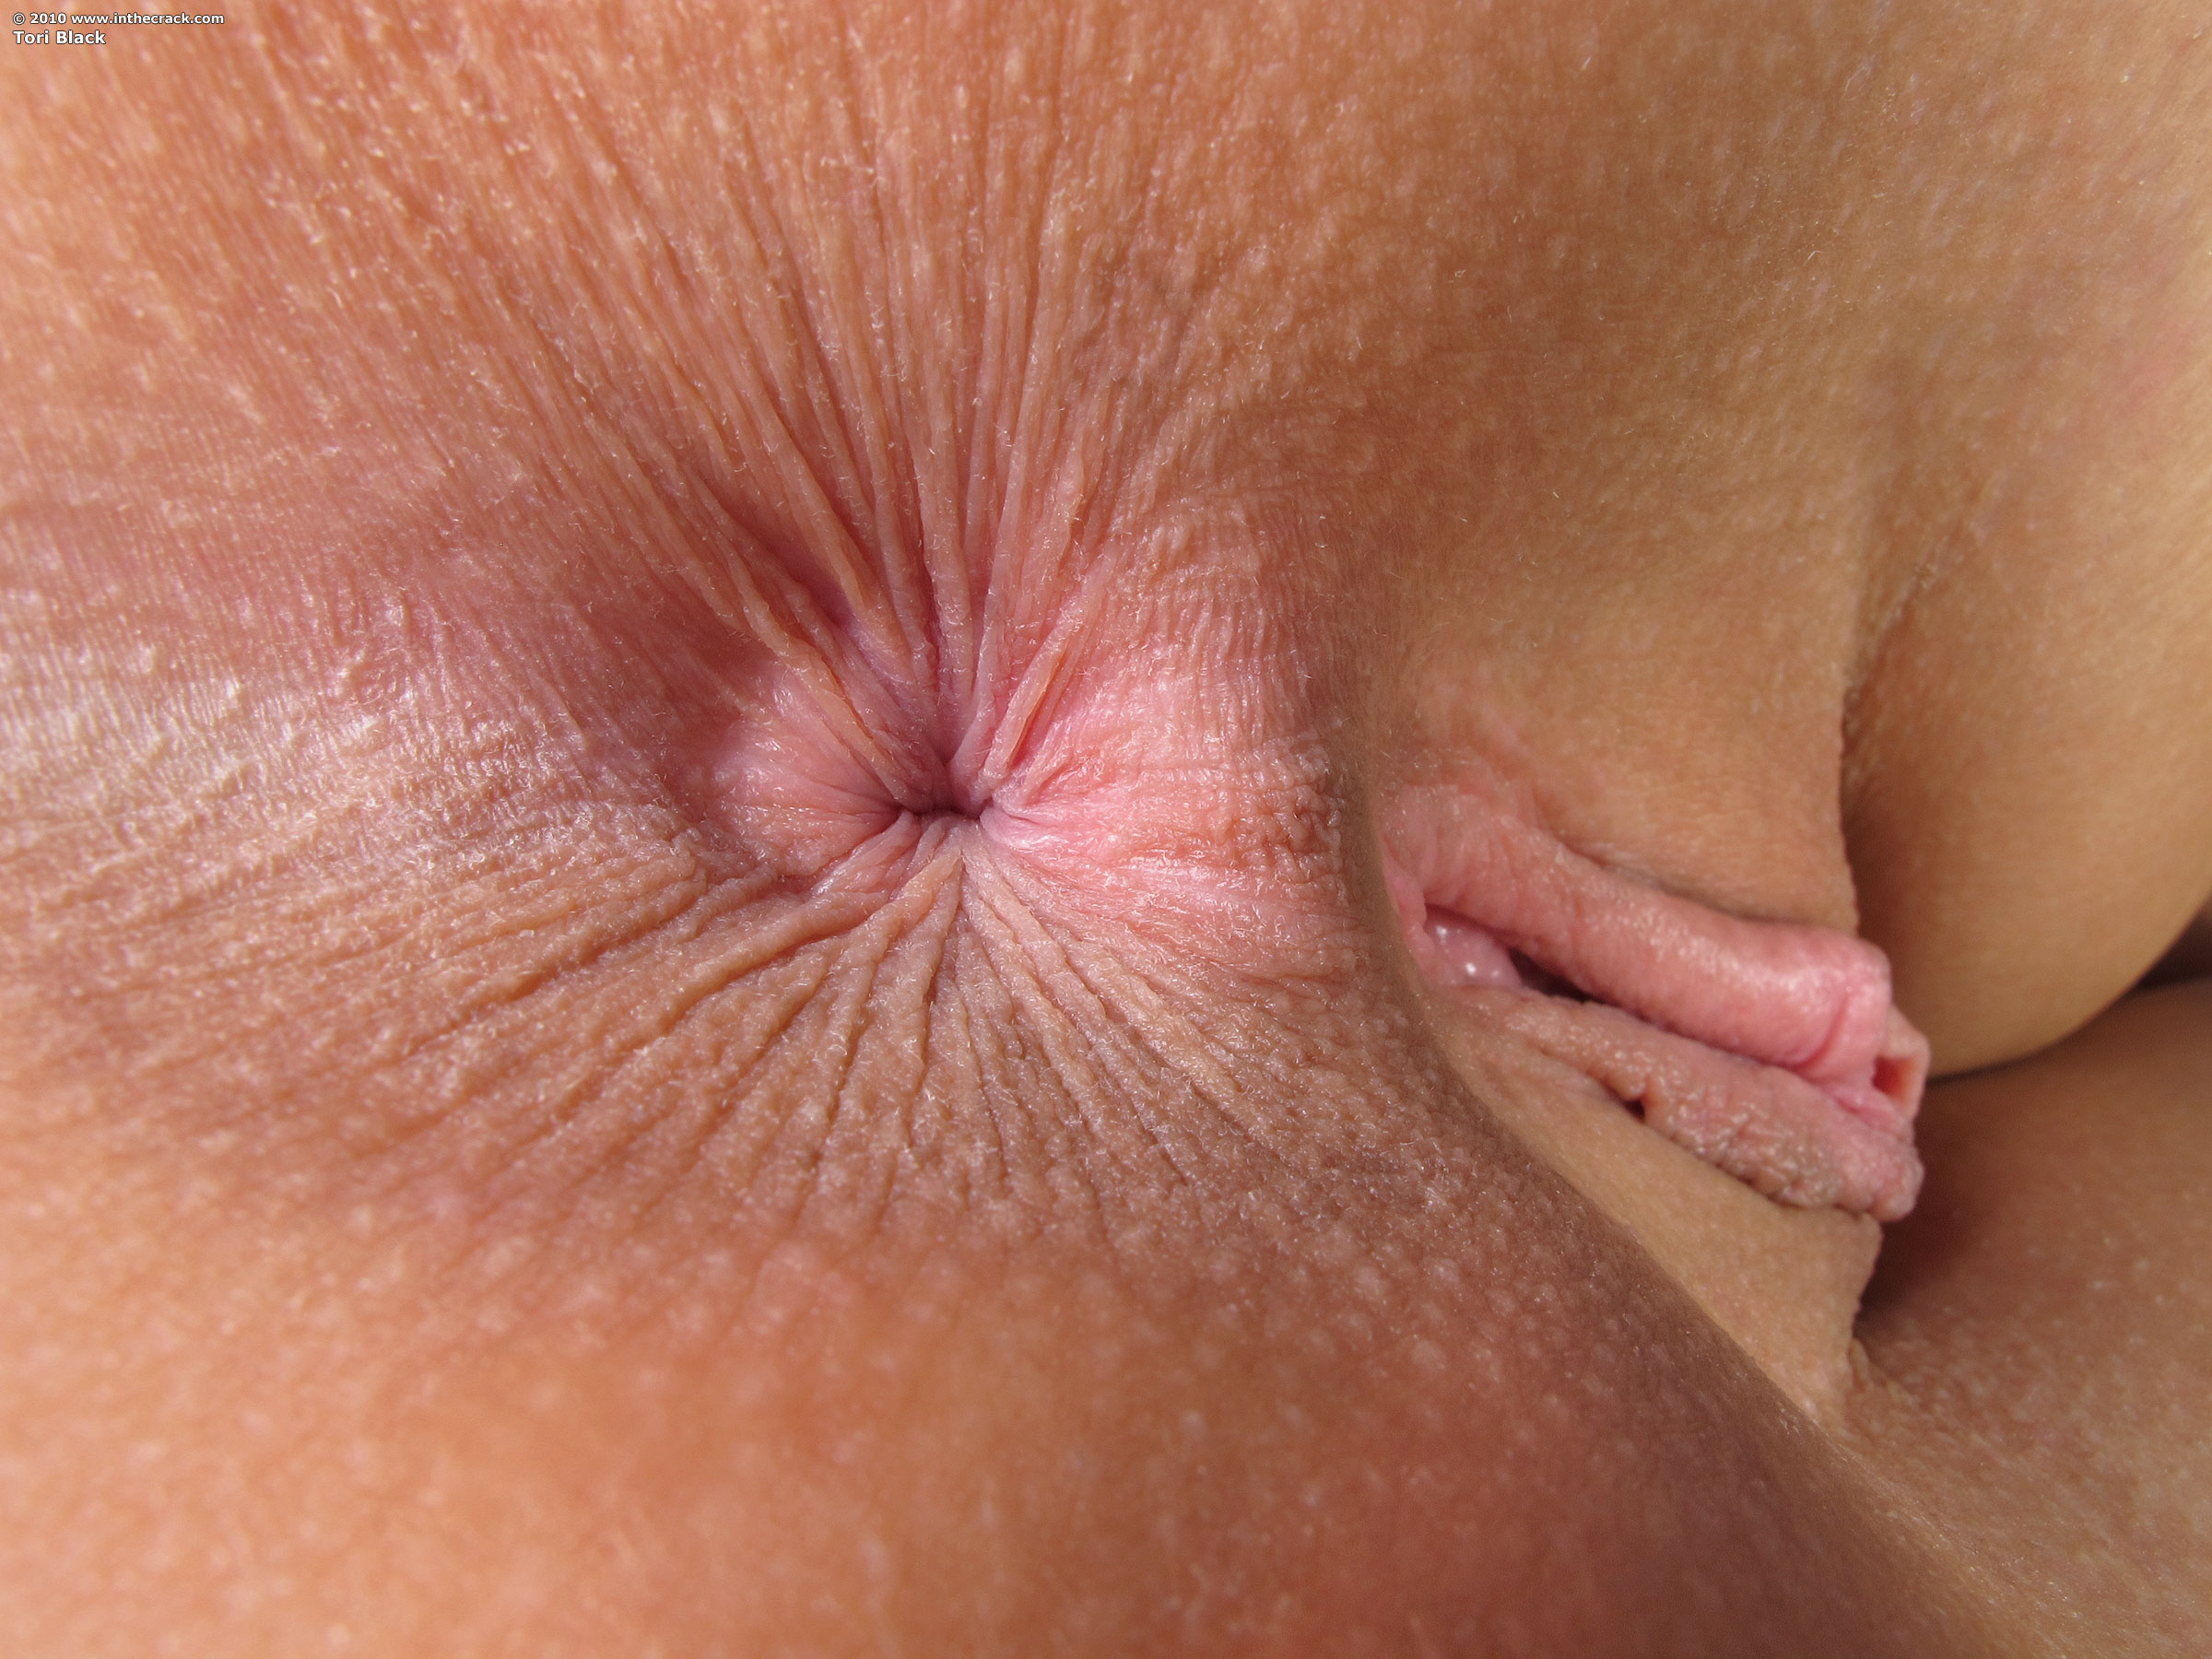 Beautiful anal hole